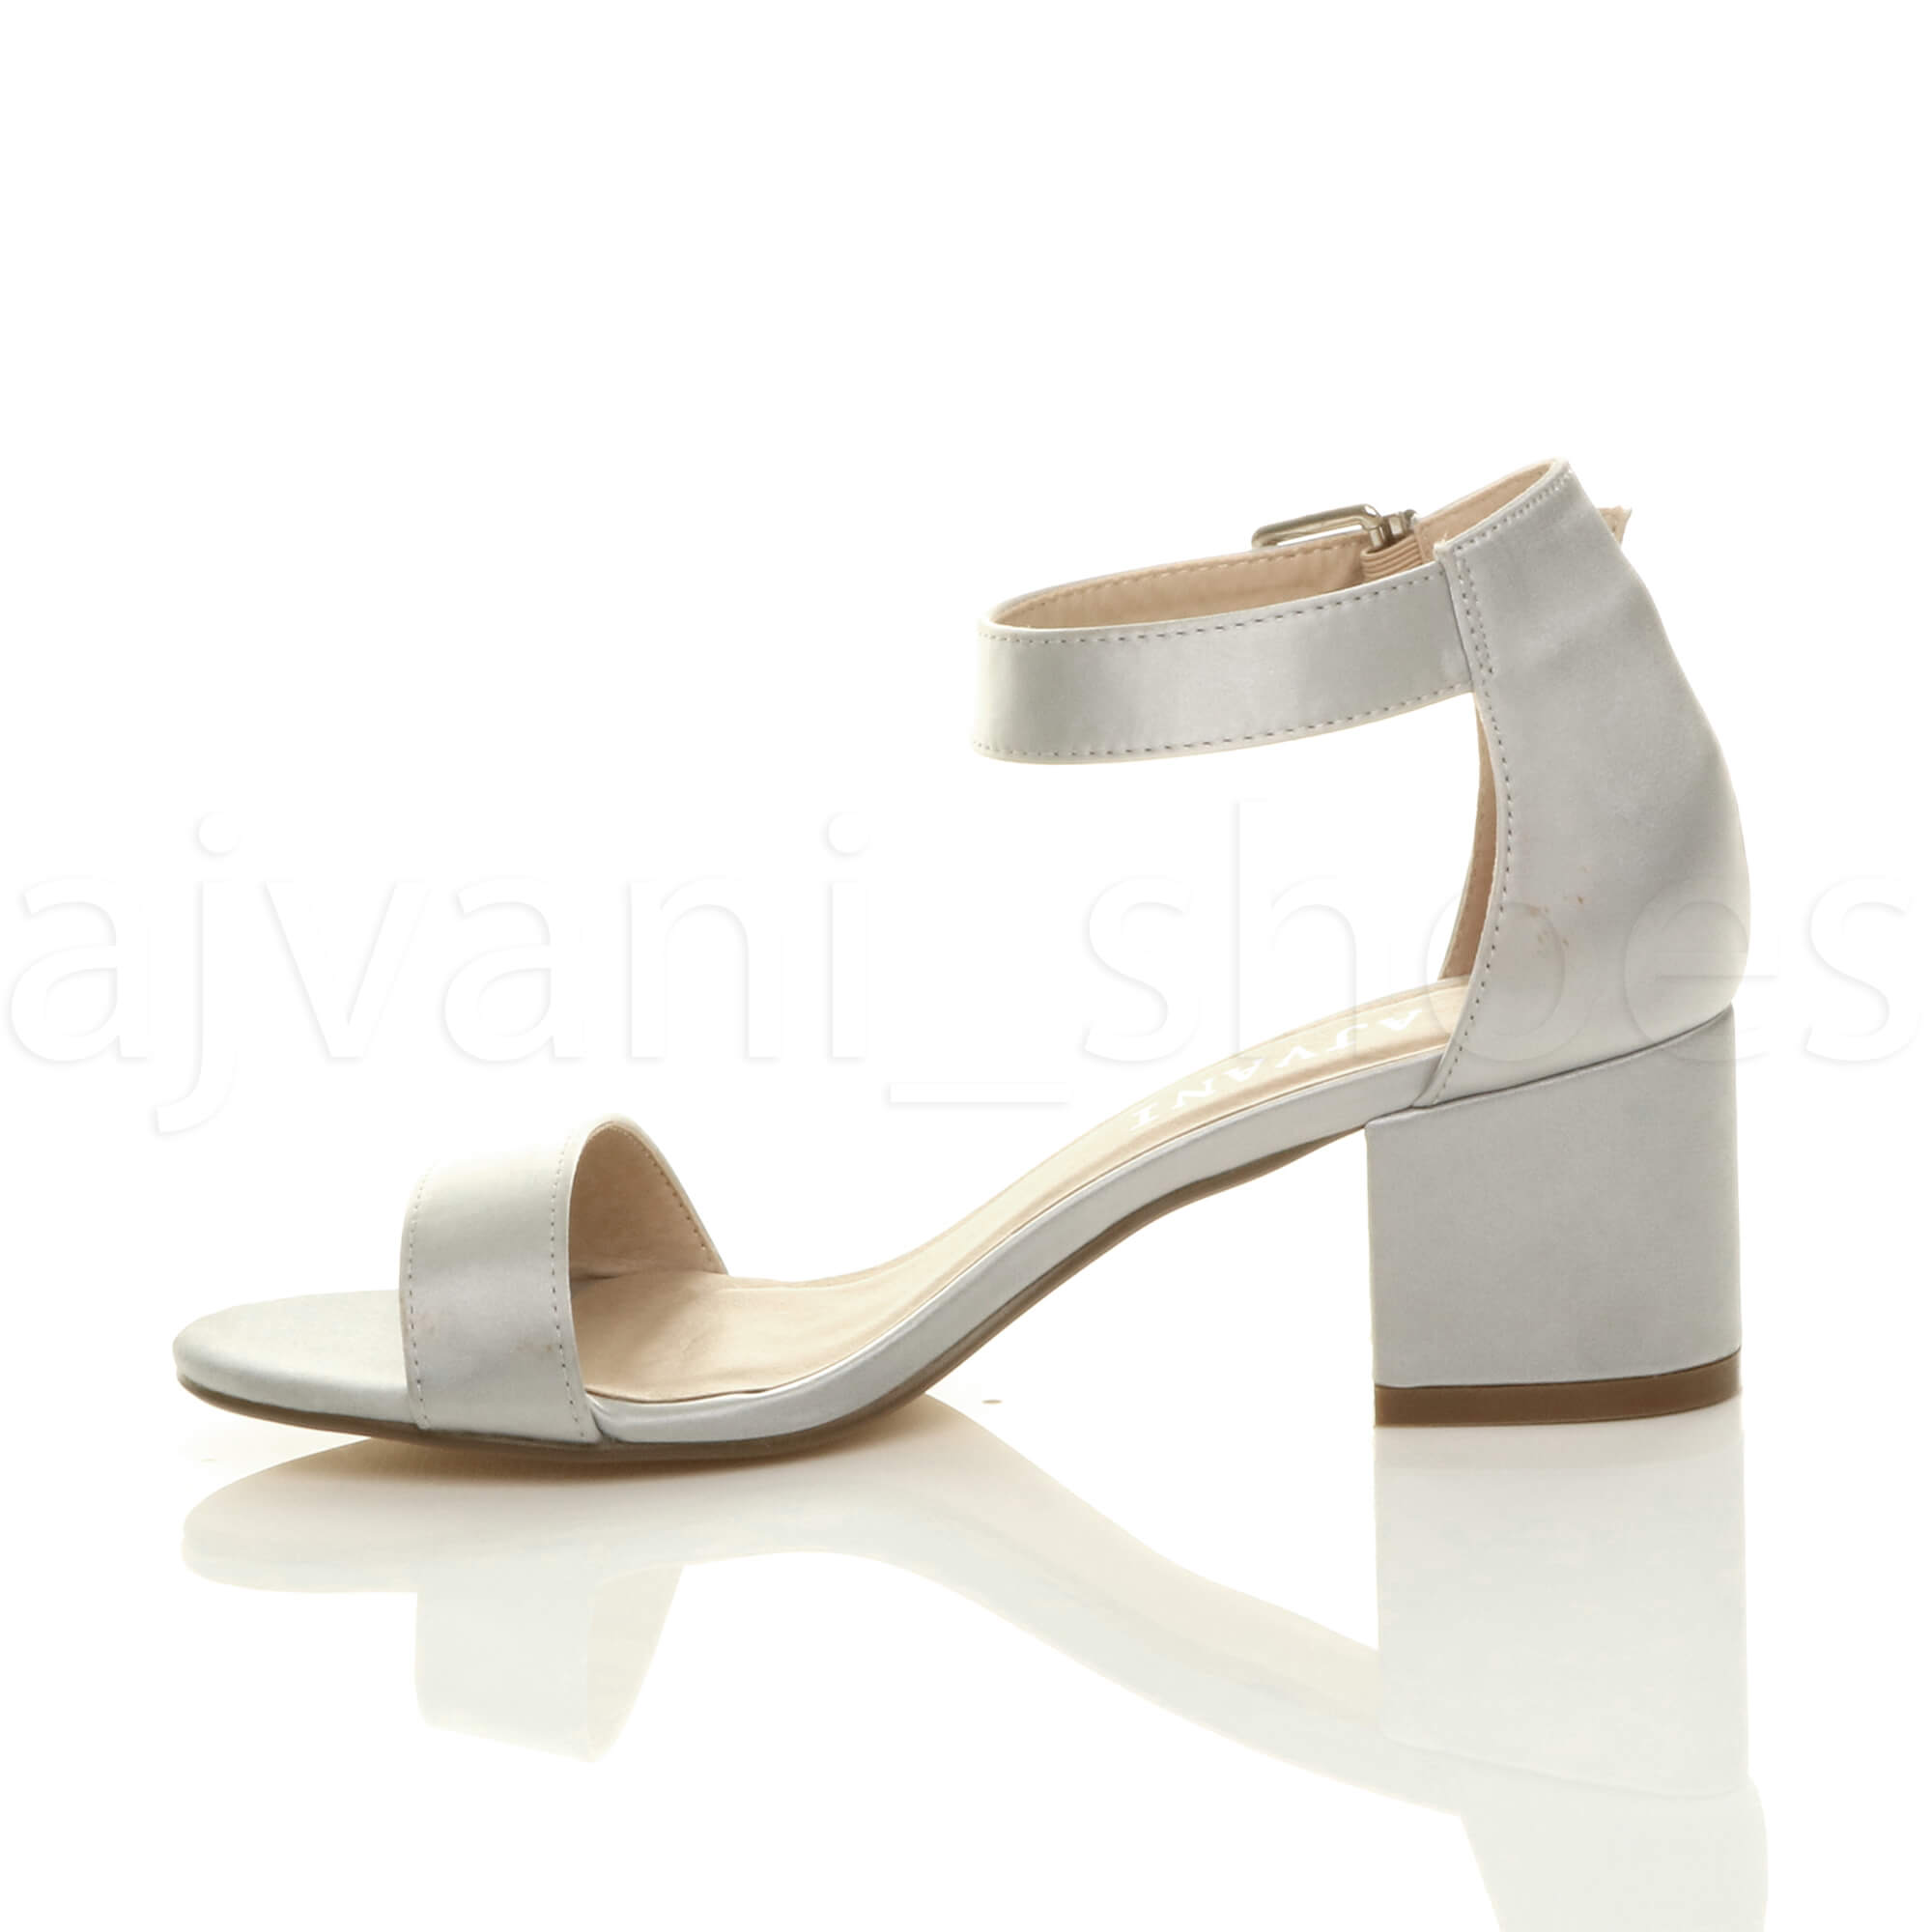 WOMENS-LADIES-LOW-MID-BLOCK-HEEL-ANKLE-STRAP-BUCKLE-PARTY-STRAPPY-SANDALS-SIZE thumbnail 184